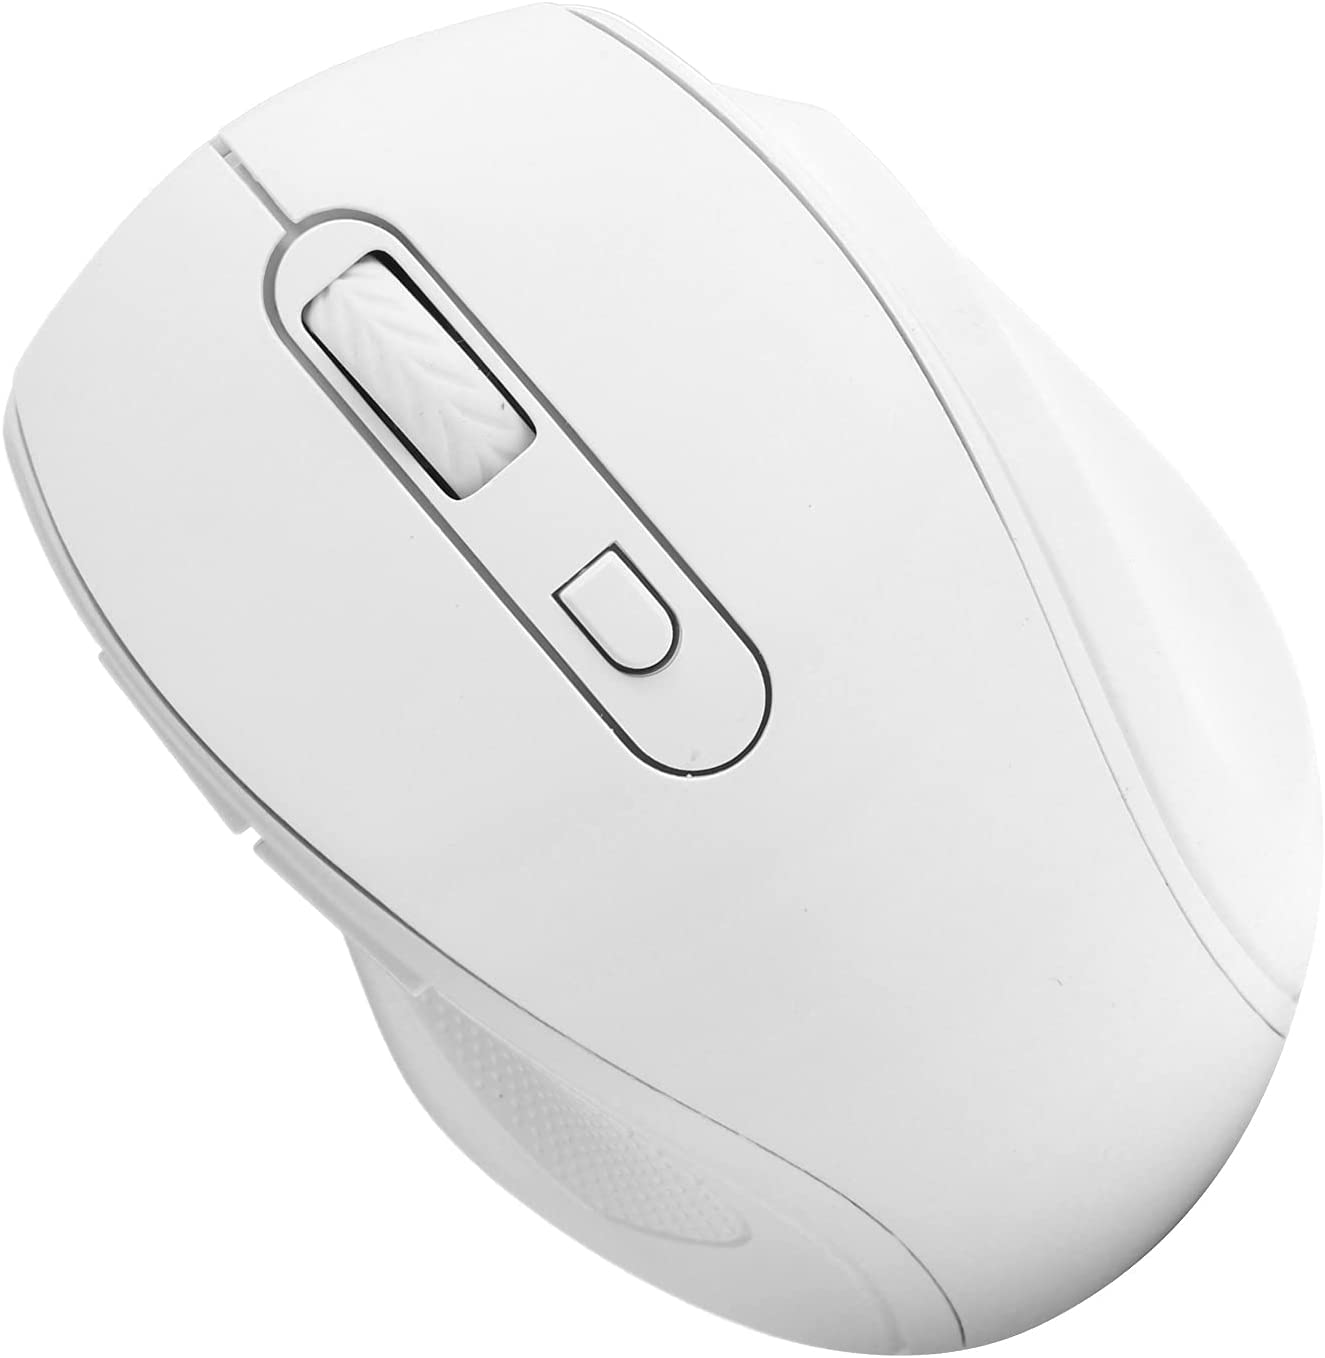 Trust Wireless Mouse Rechargeable Ergonomic Mice USB Comp Limited price